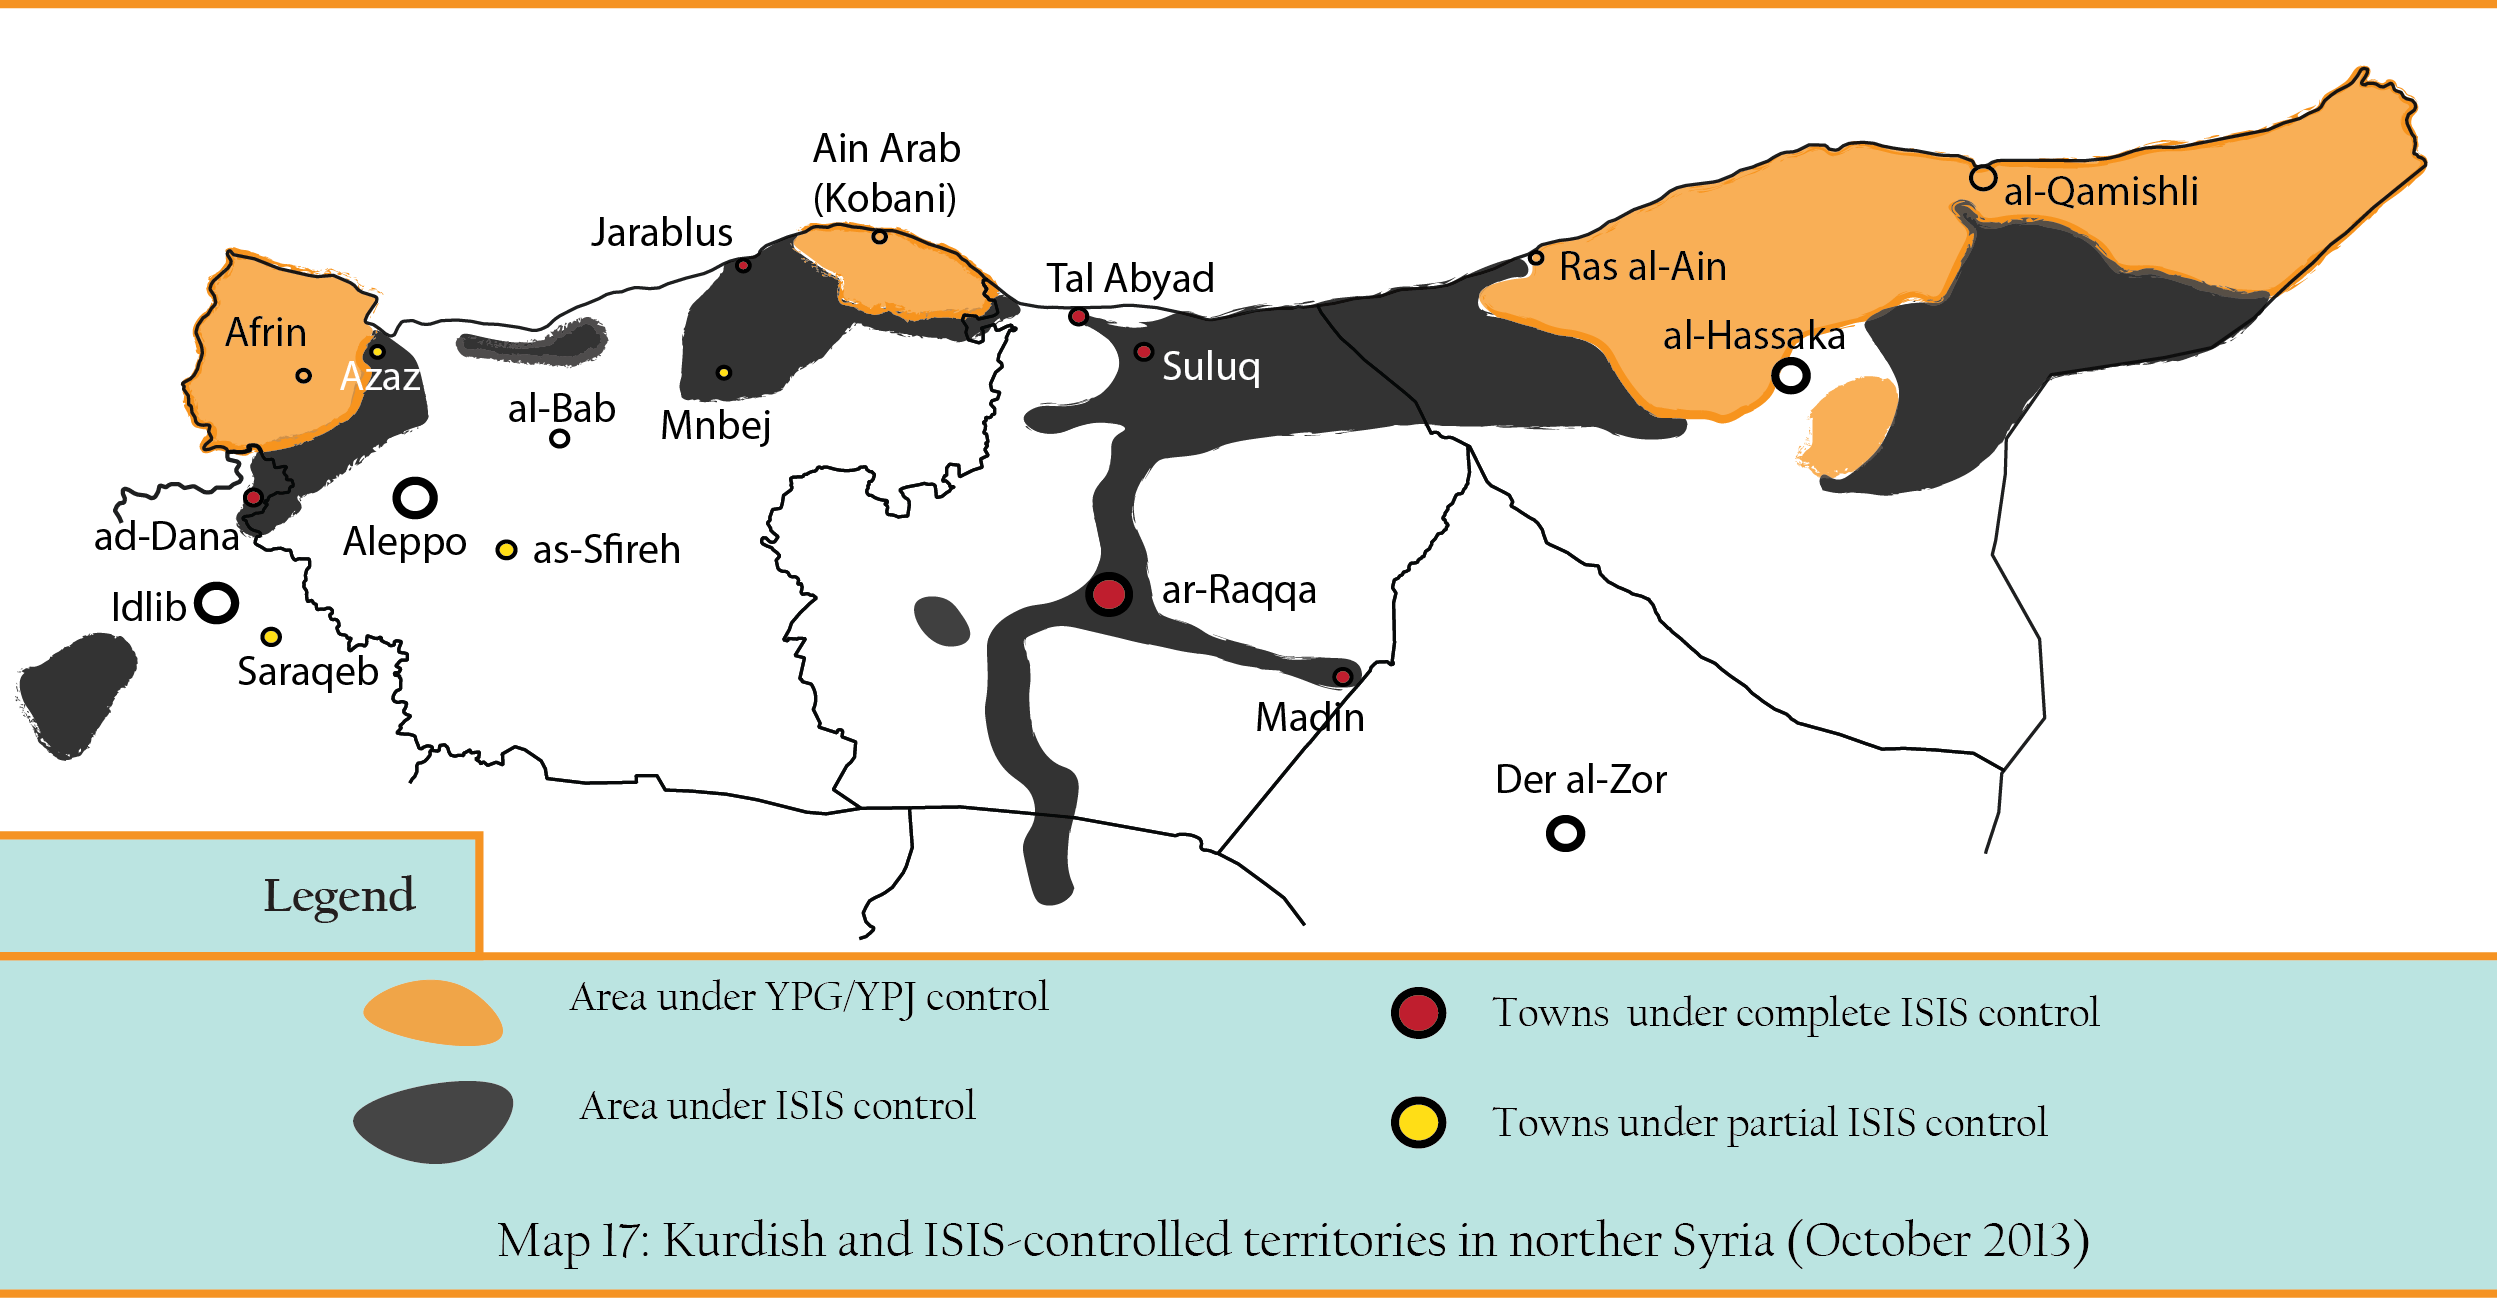 ISIS + kurdish control in the north